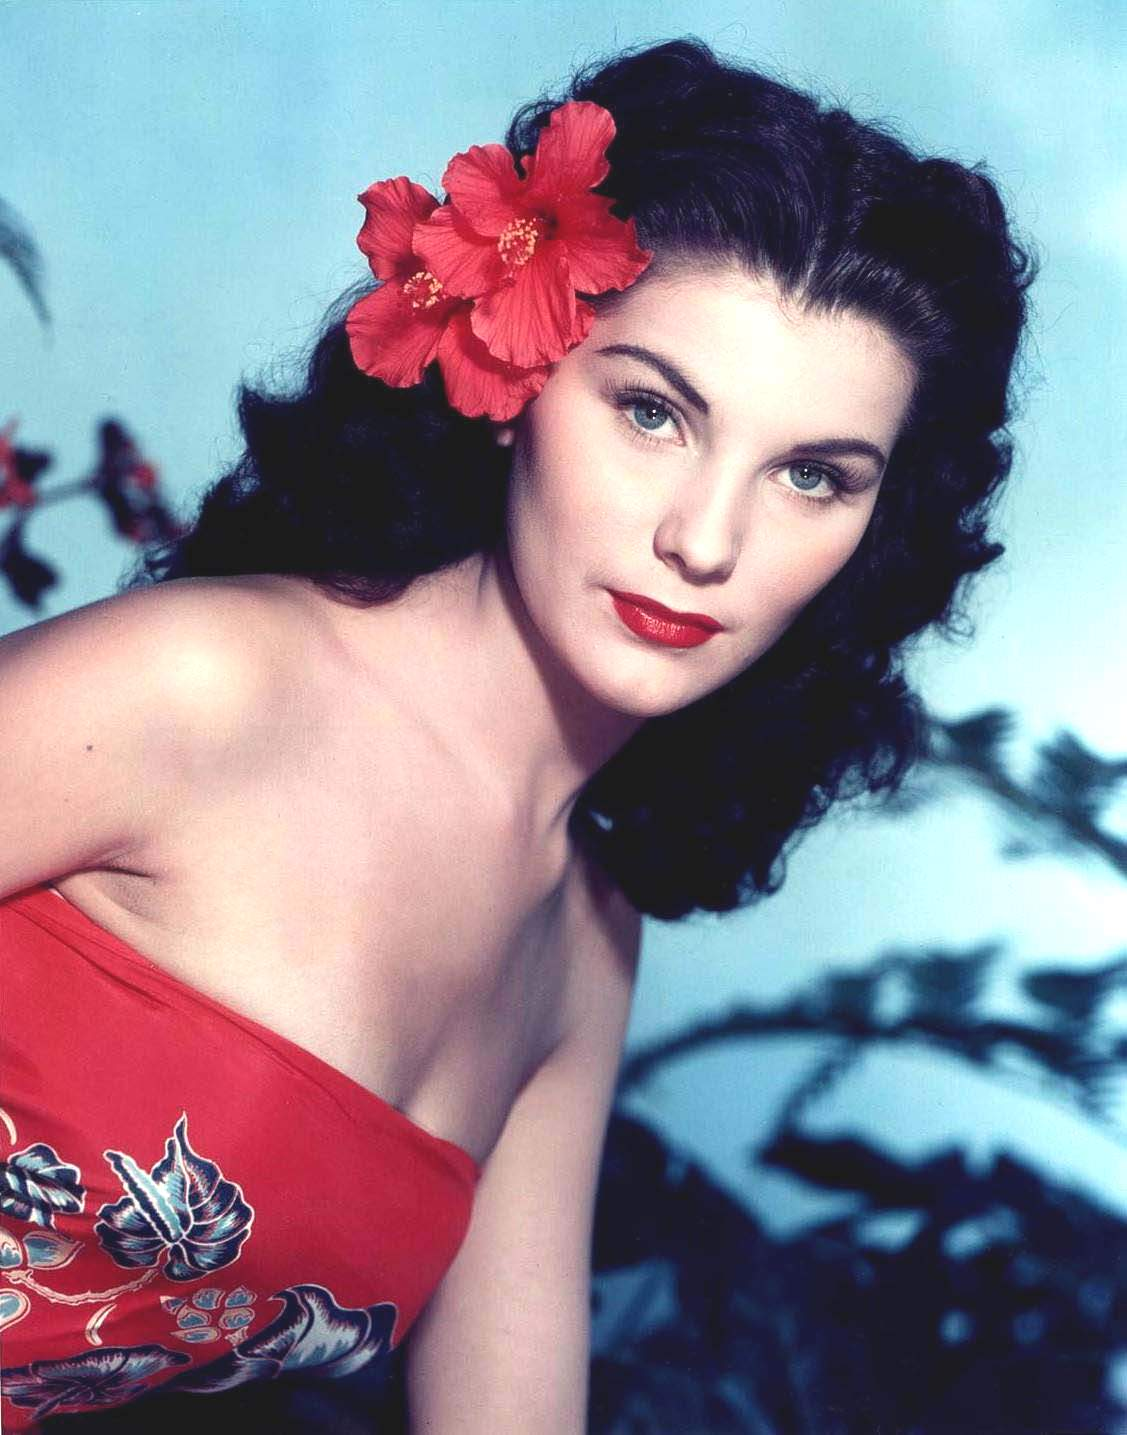 Puppy Love Preschool Style Muse Debra Paget